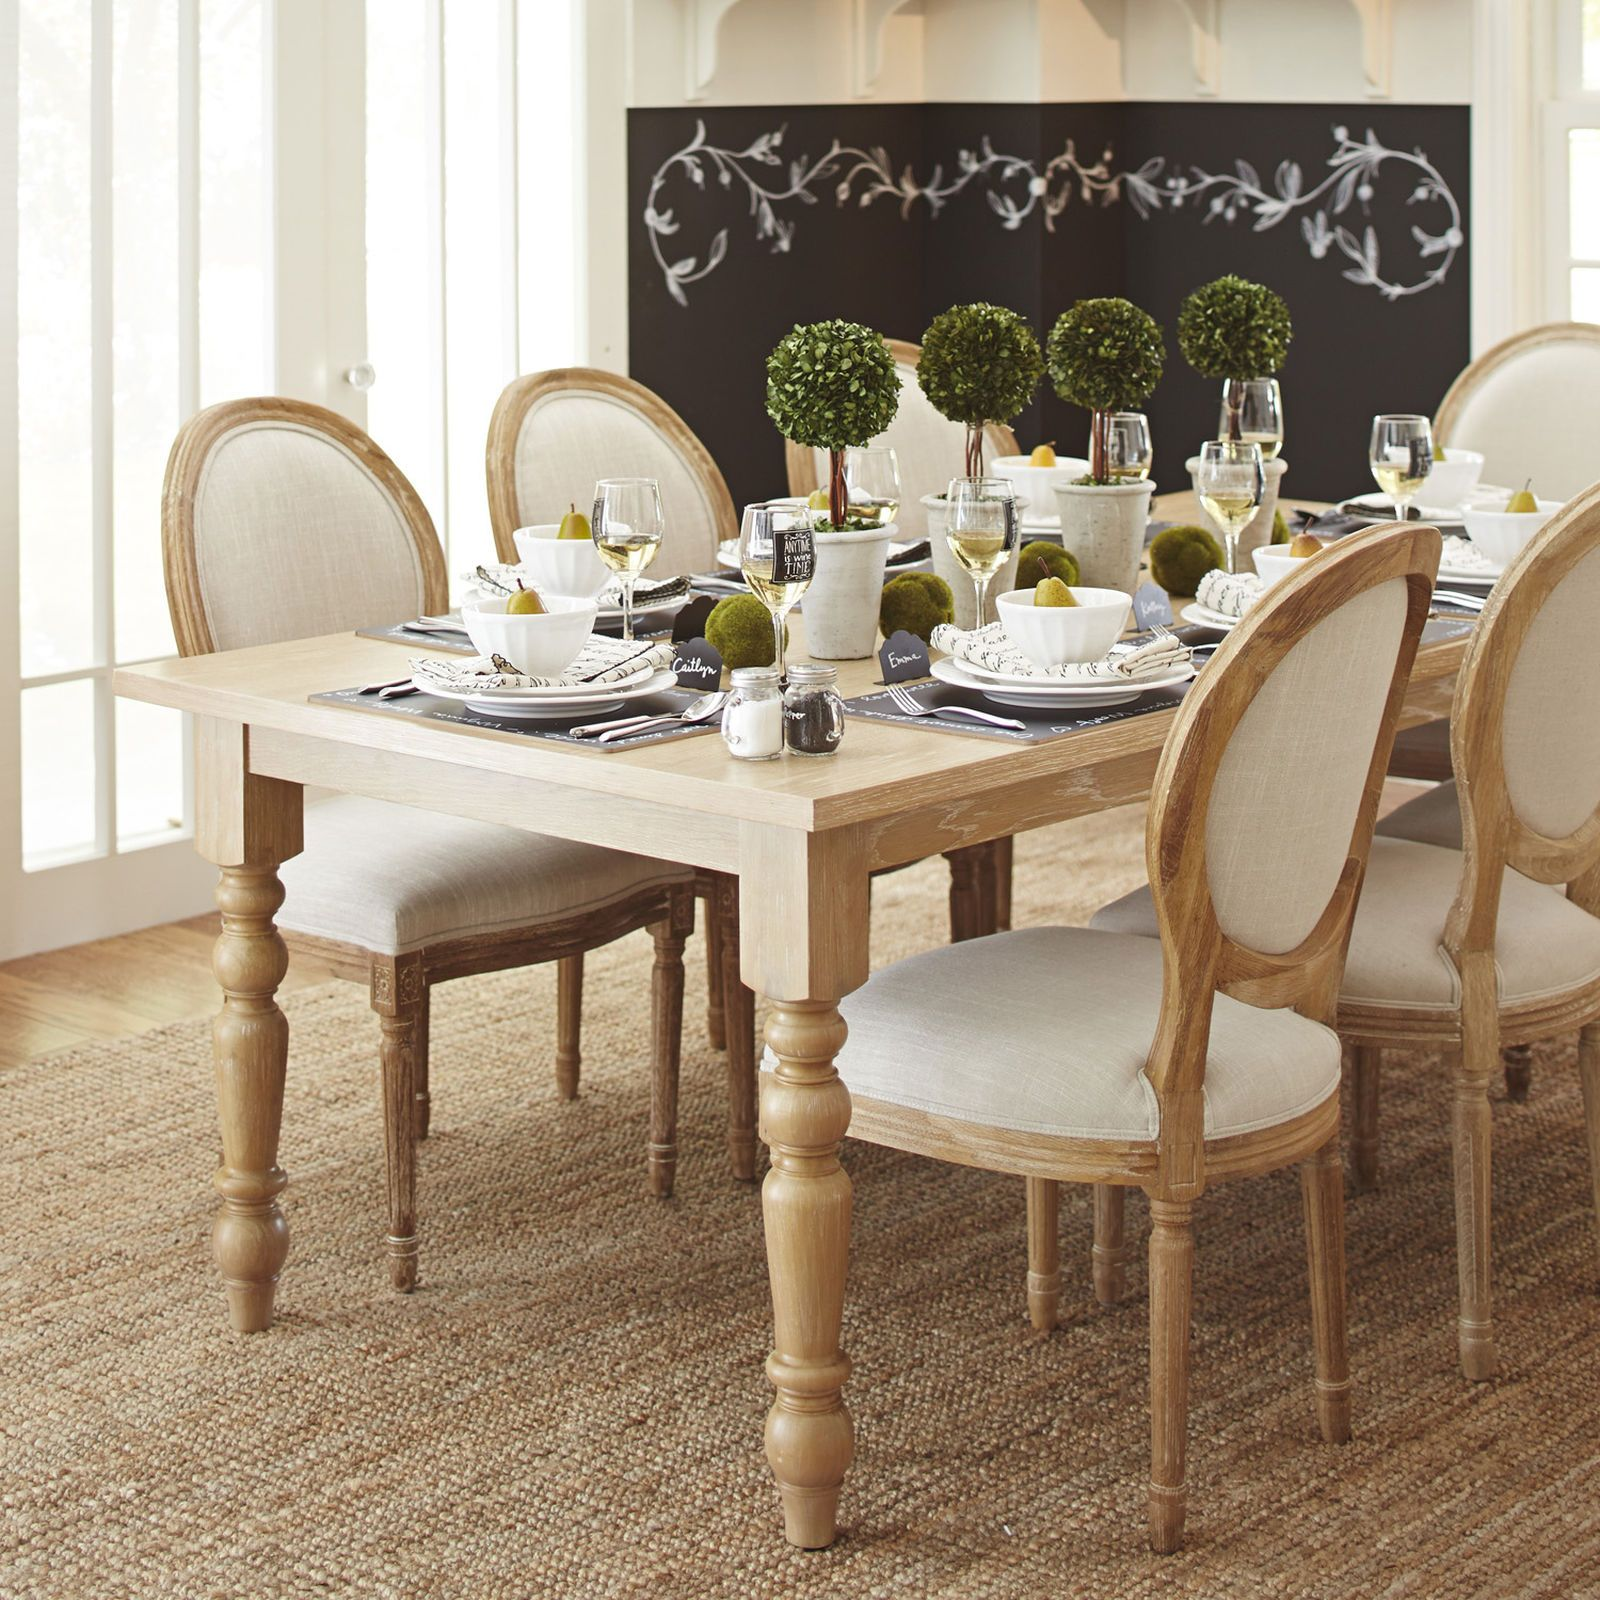 "Pier One Kitchen Table: Torrance 84"" Natural Whitewash Turned Leg Dining Table In"